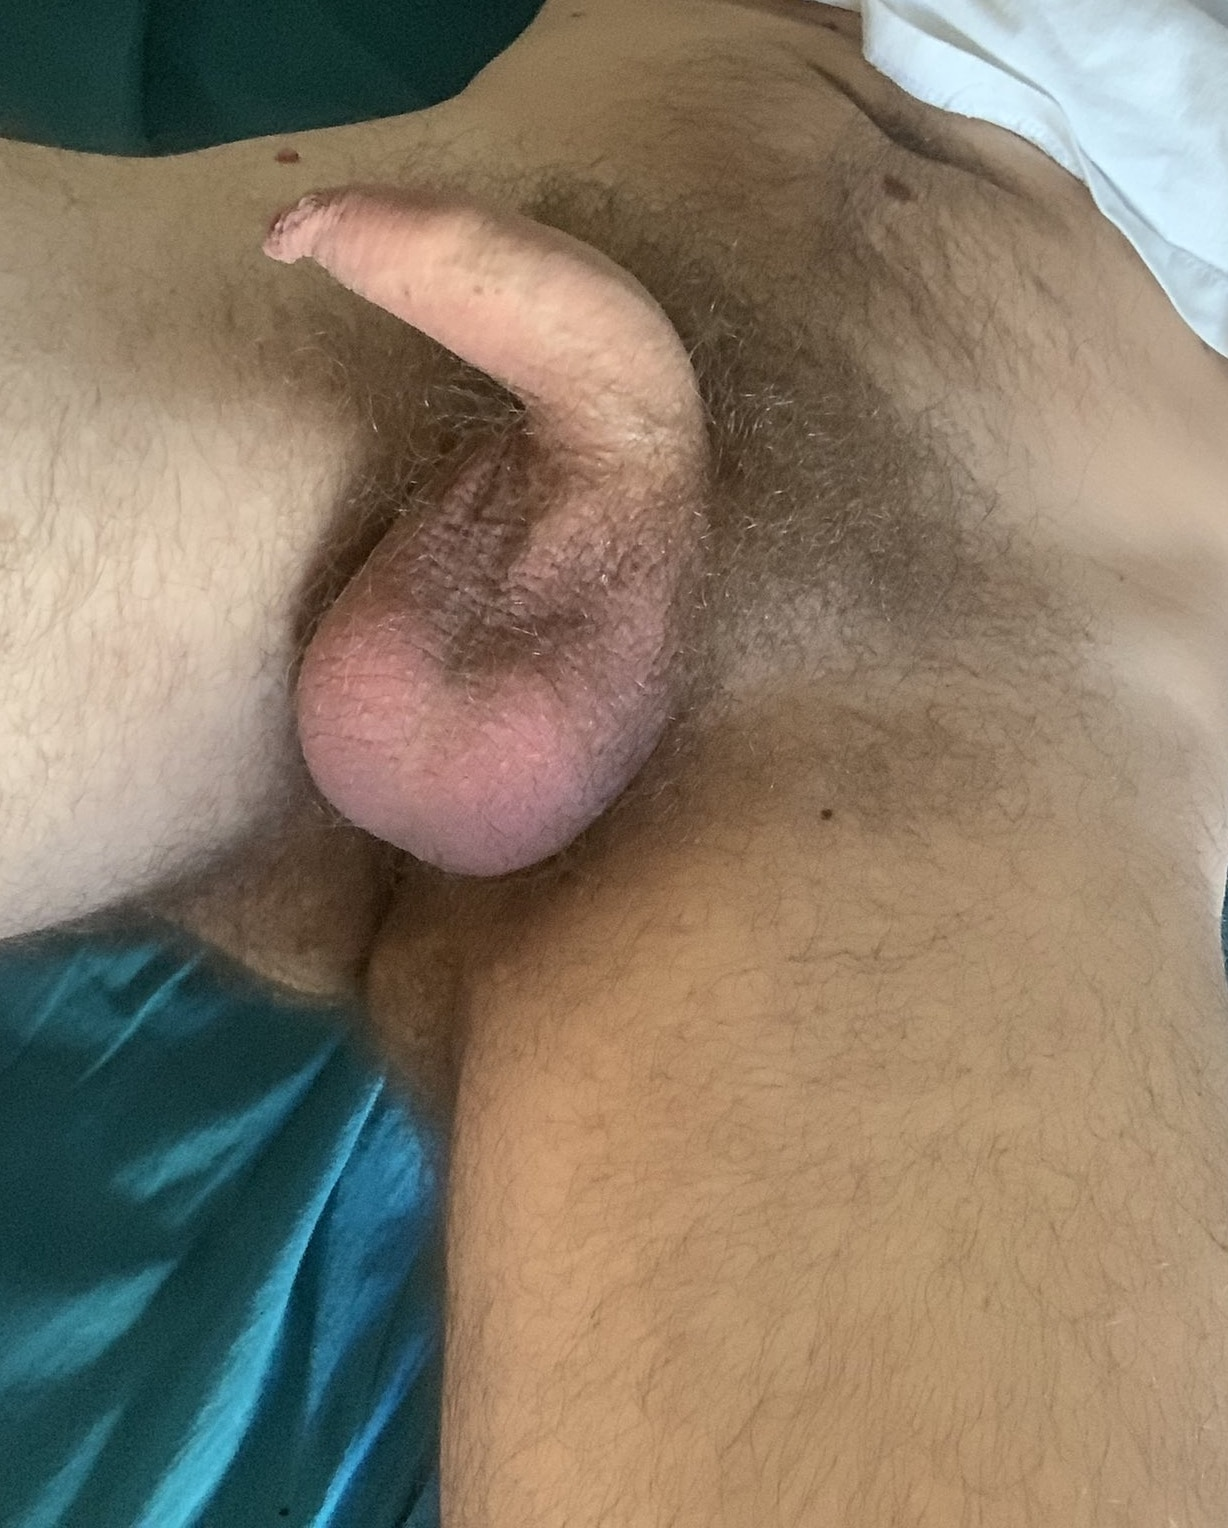 Soft penis with foreskin